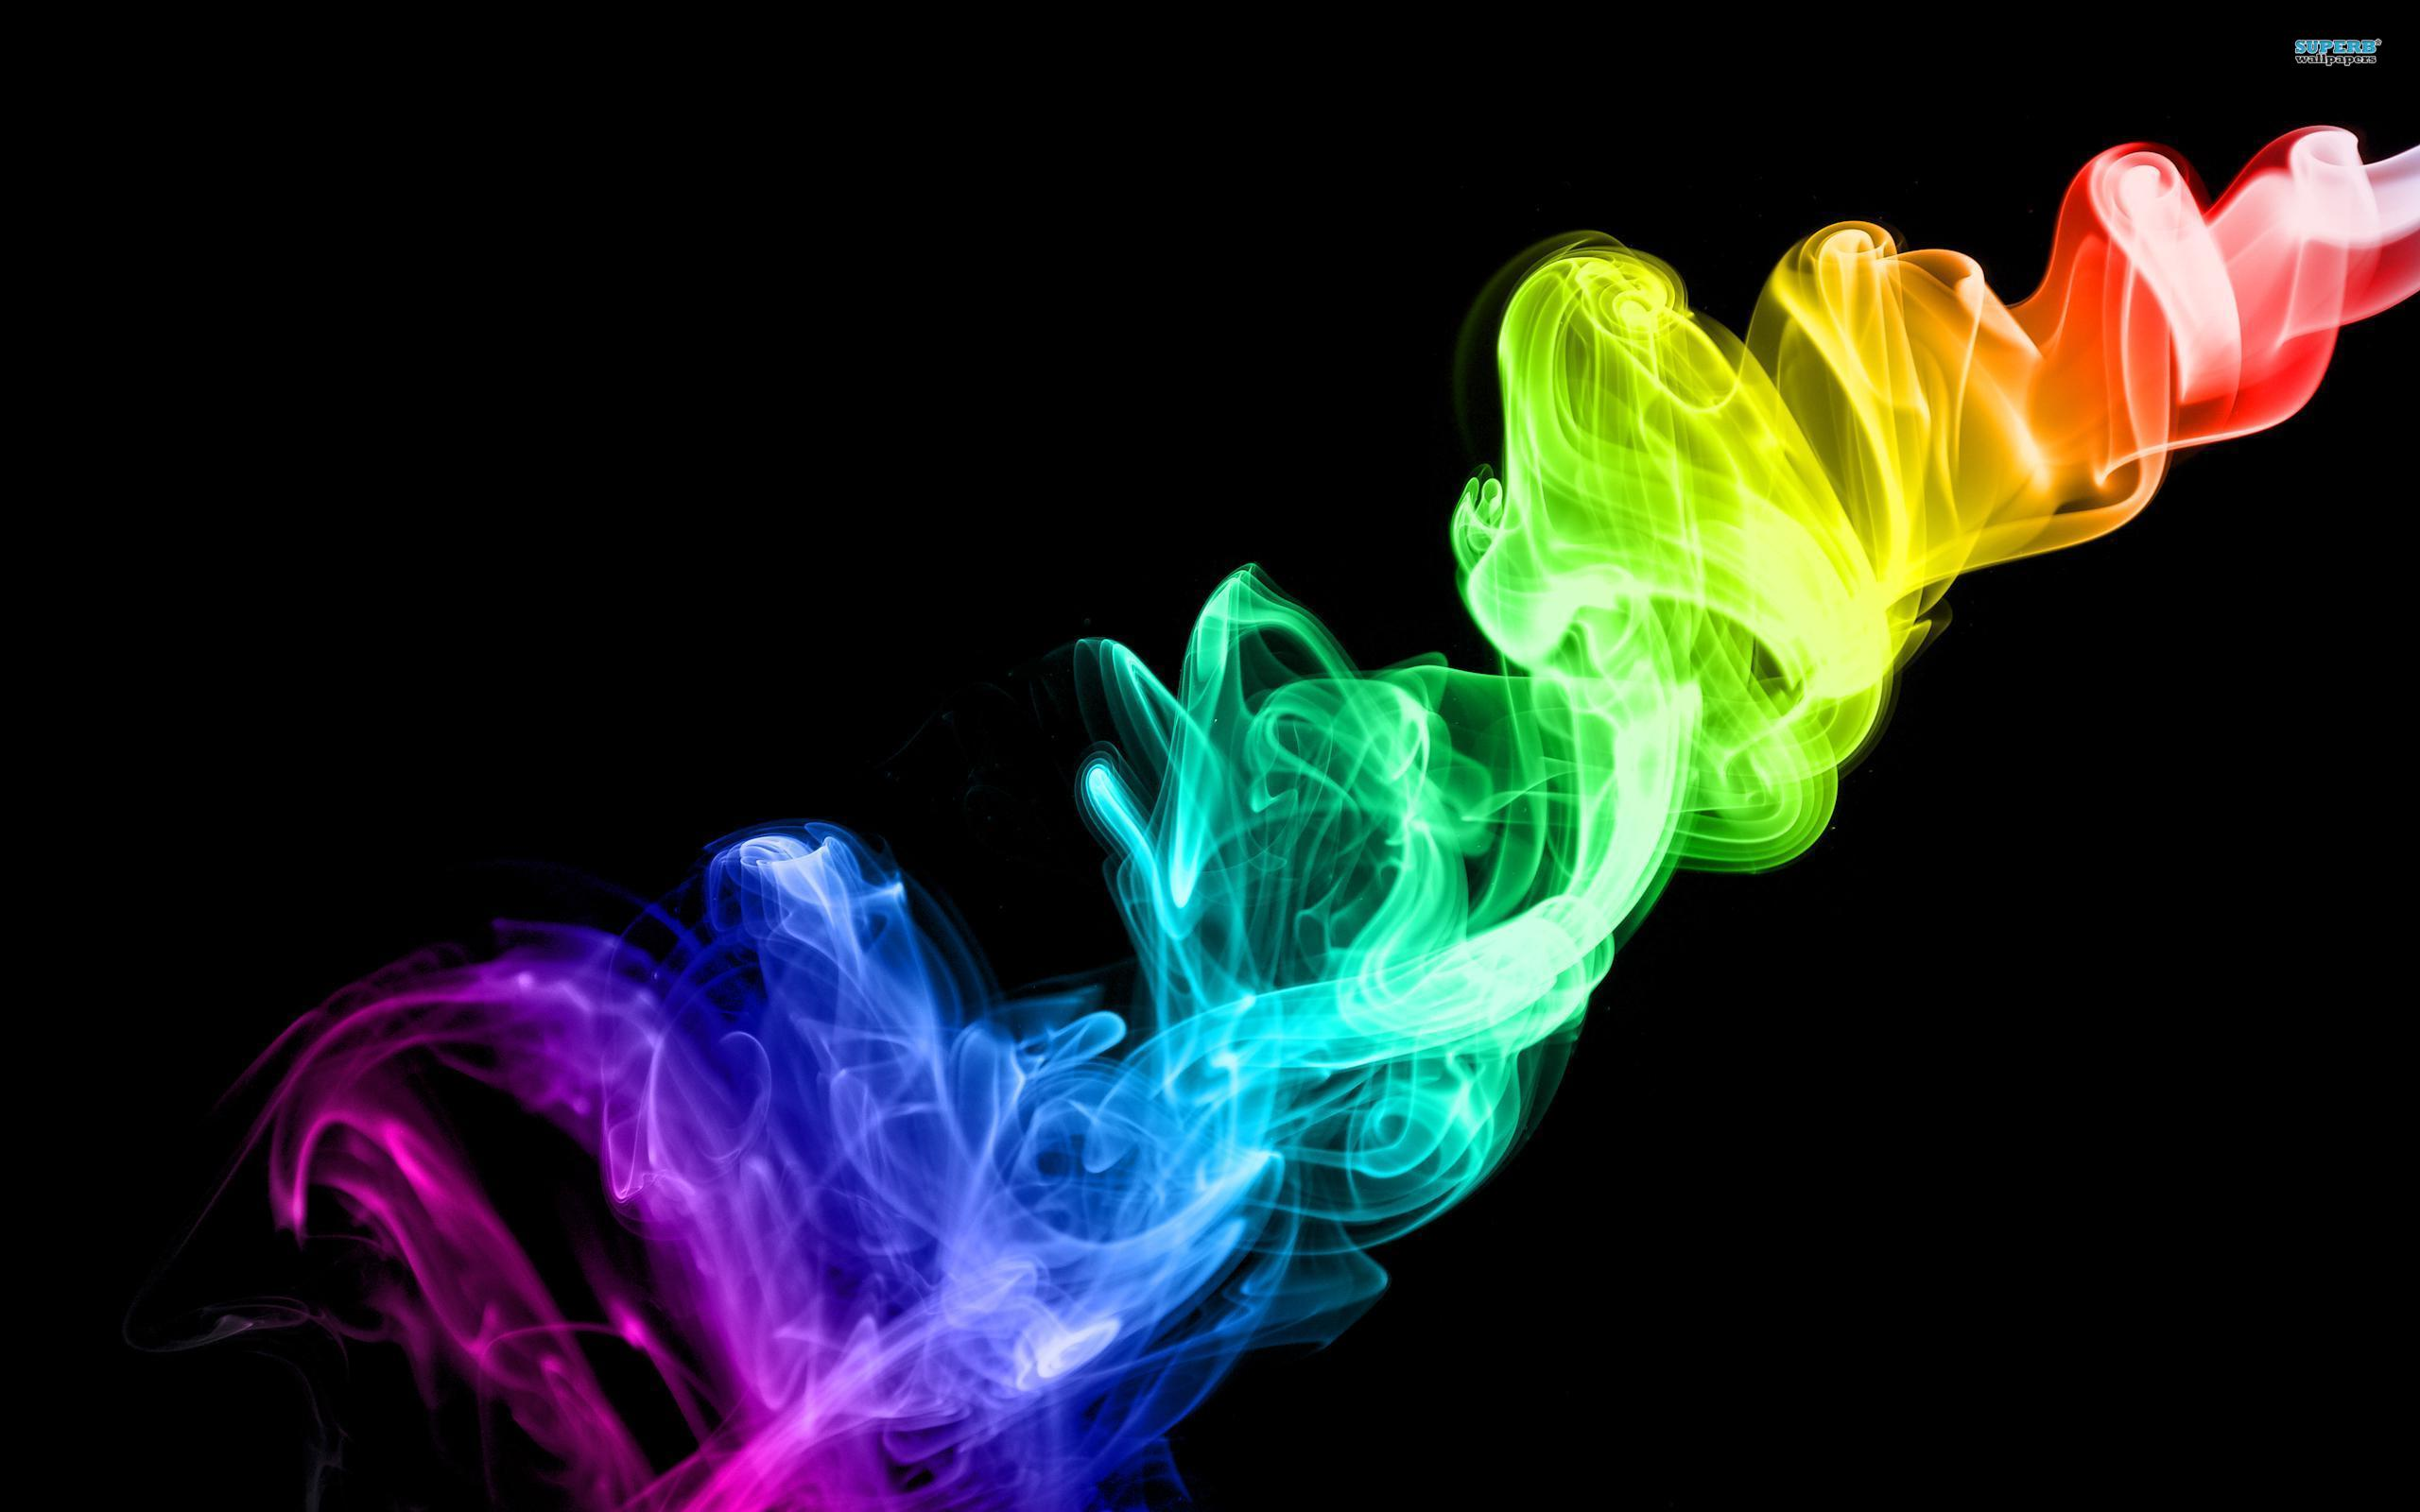 rainbow smoke wallpapers r - photo #33